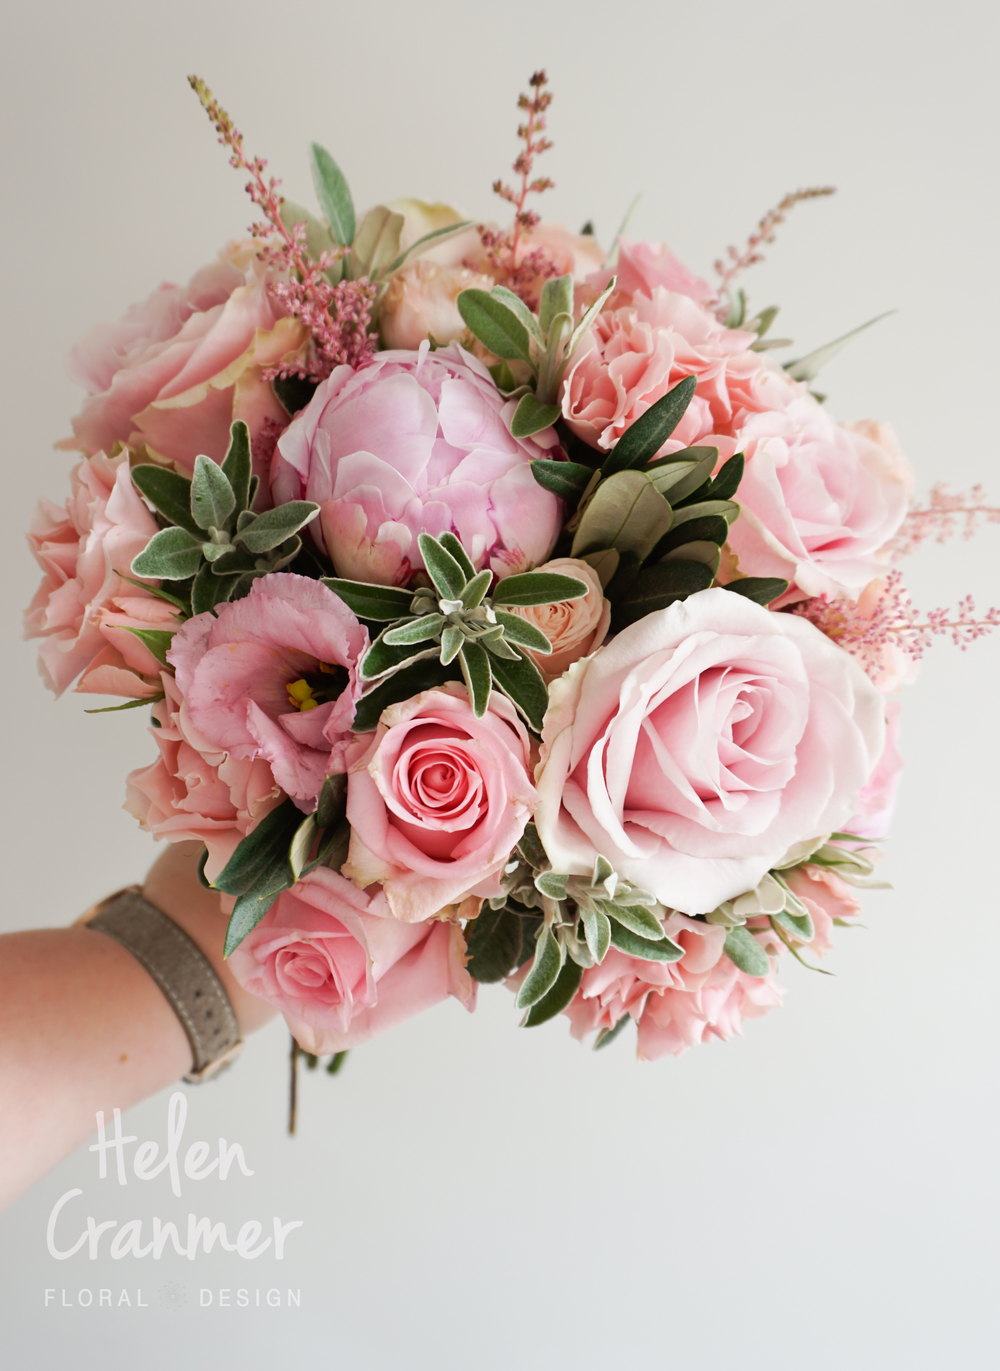 Weddings — Helen cranmer floral design